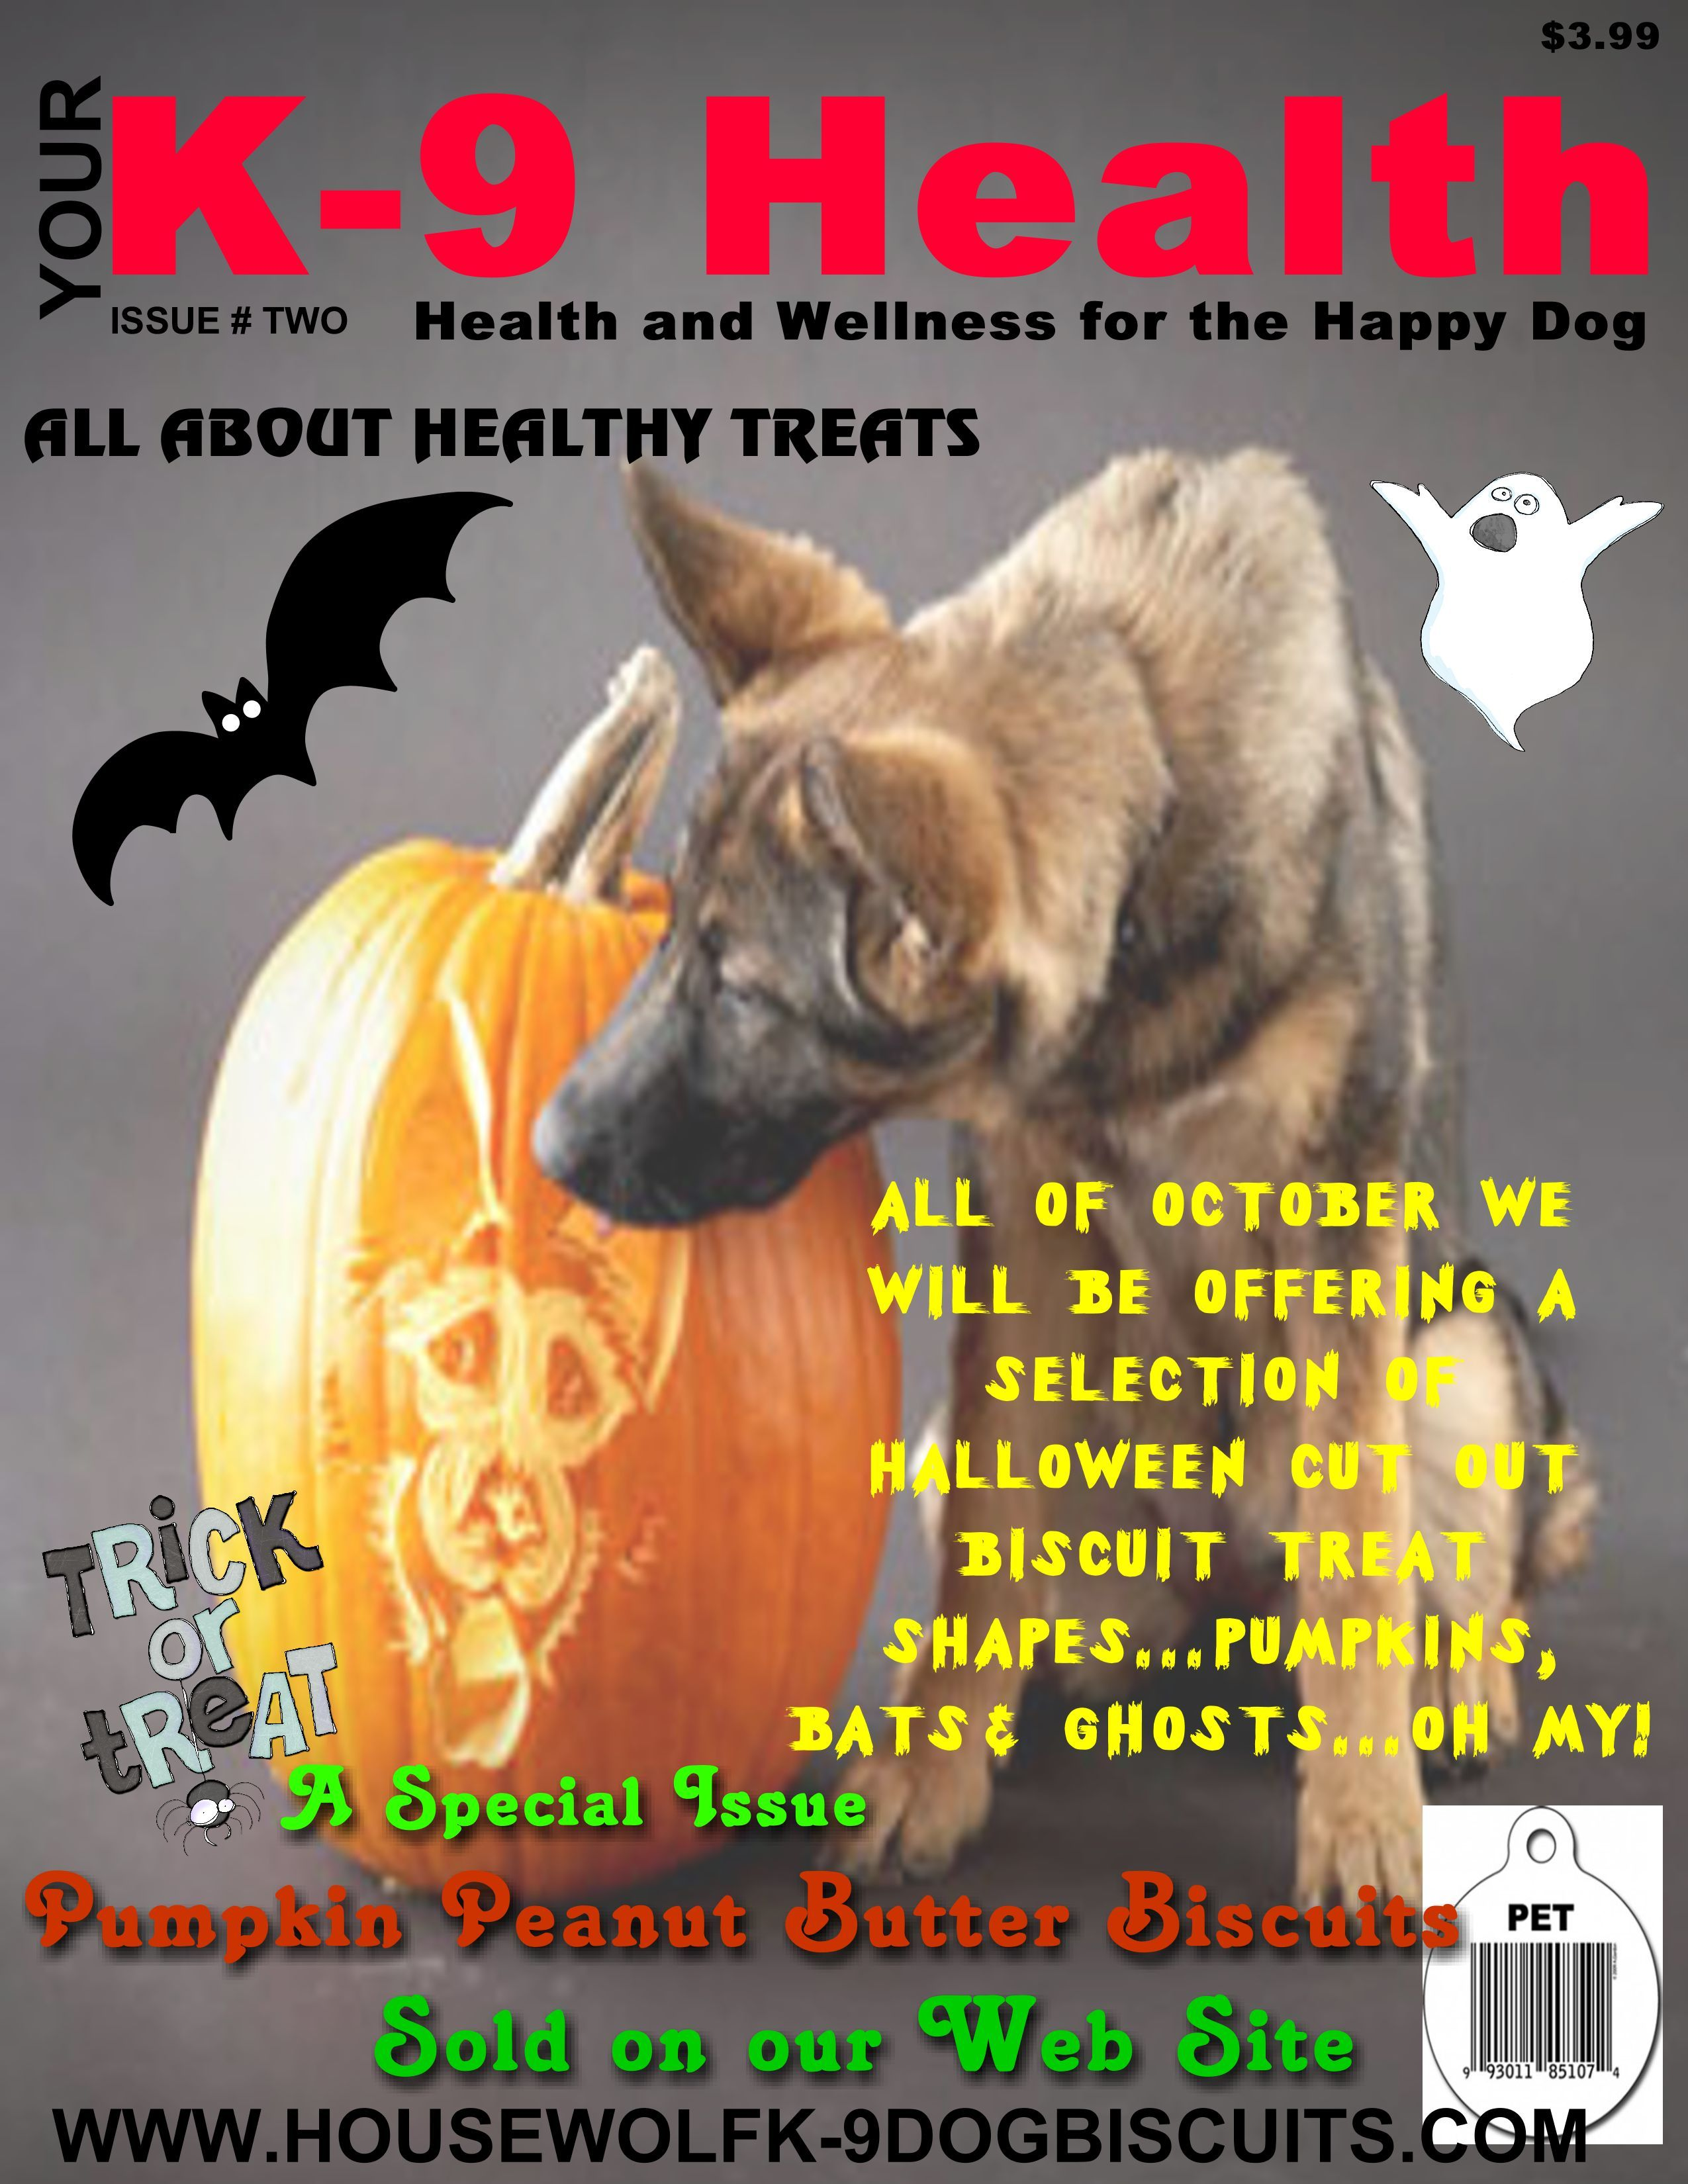 23 Days until Halloween, then our Pumpkin Peanut Butter Biscuit treats will come to an end.  Made with our Sugar Pumpkins from the pumpkin patch in Vermont. www.housewolfk-9dogbiscuits.com